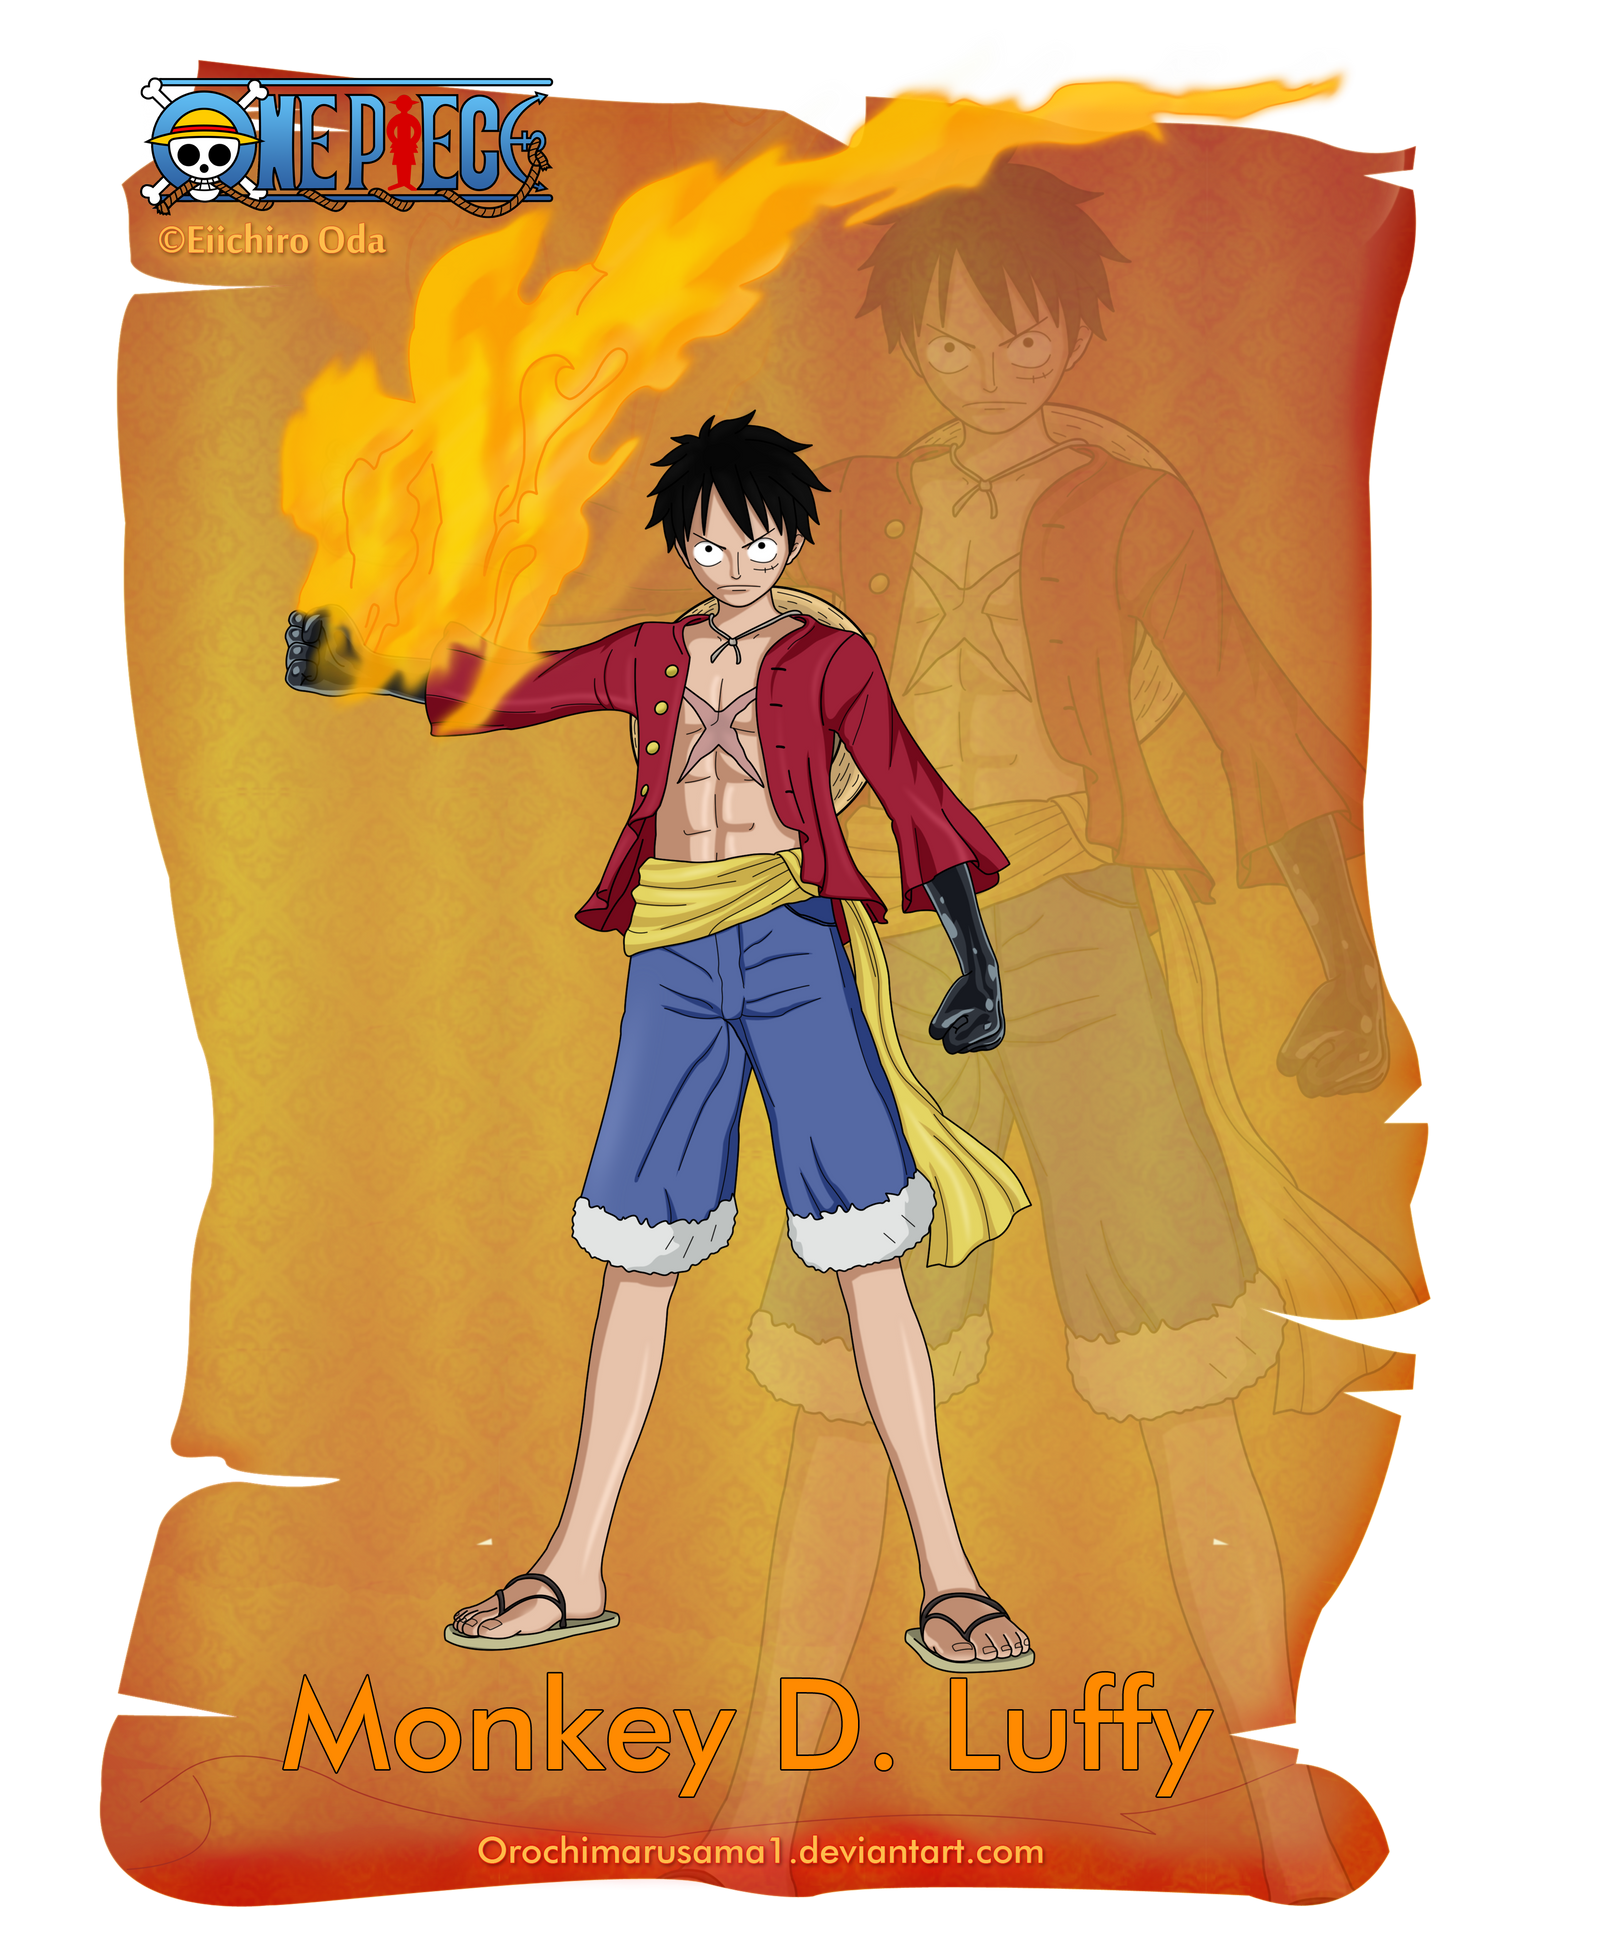 Monkey D. Luffy (Haki) by orochimarusama1 on DeviantArt